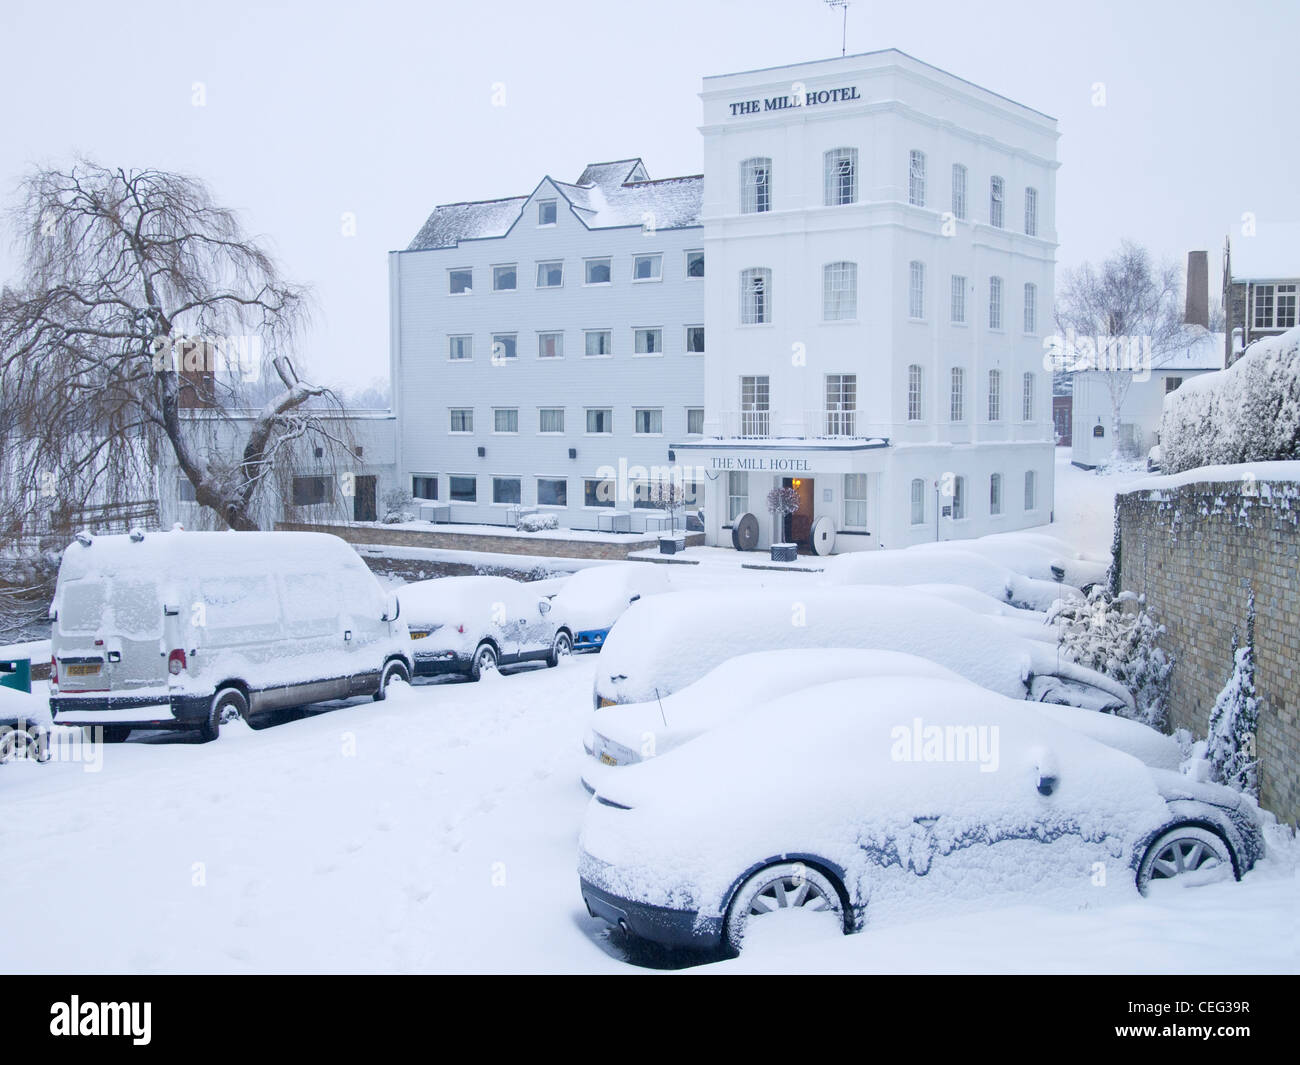 Snow-covered parked cars in front of the Mill Hotel building in Sudbury, Suffolk, England. - Stock Image